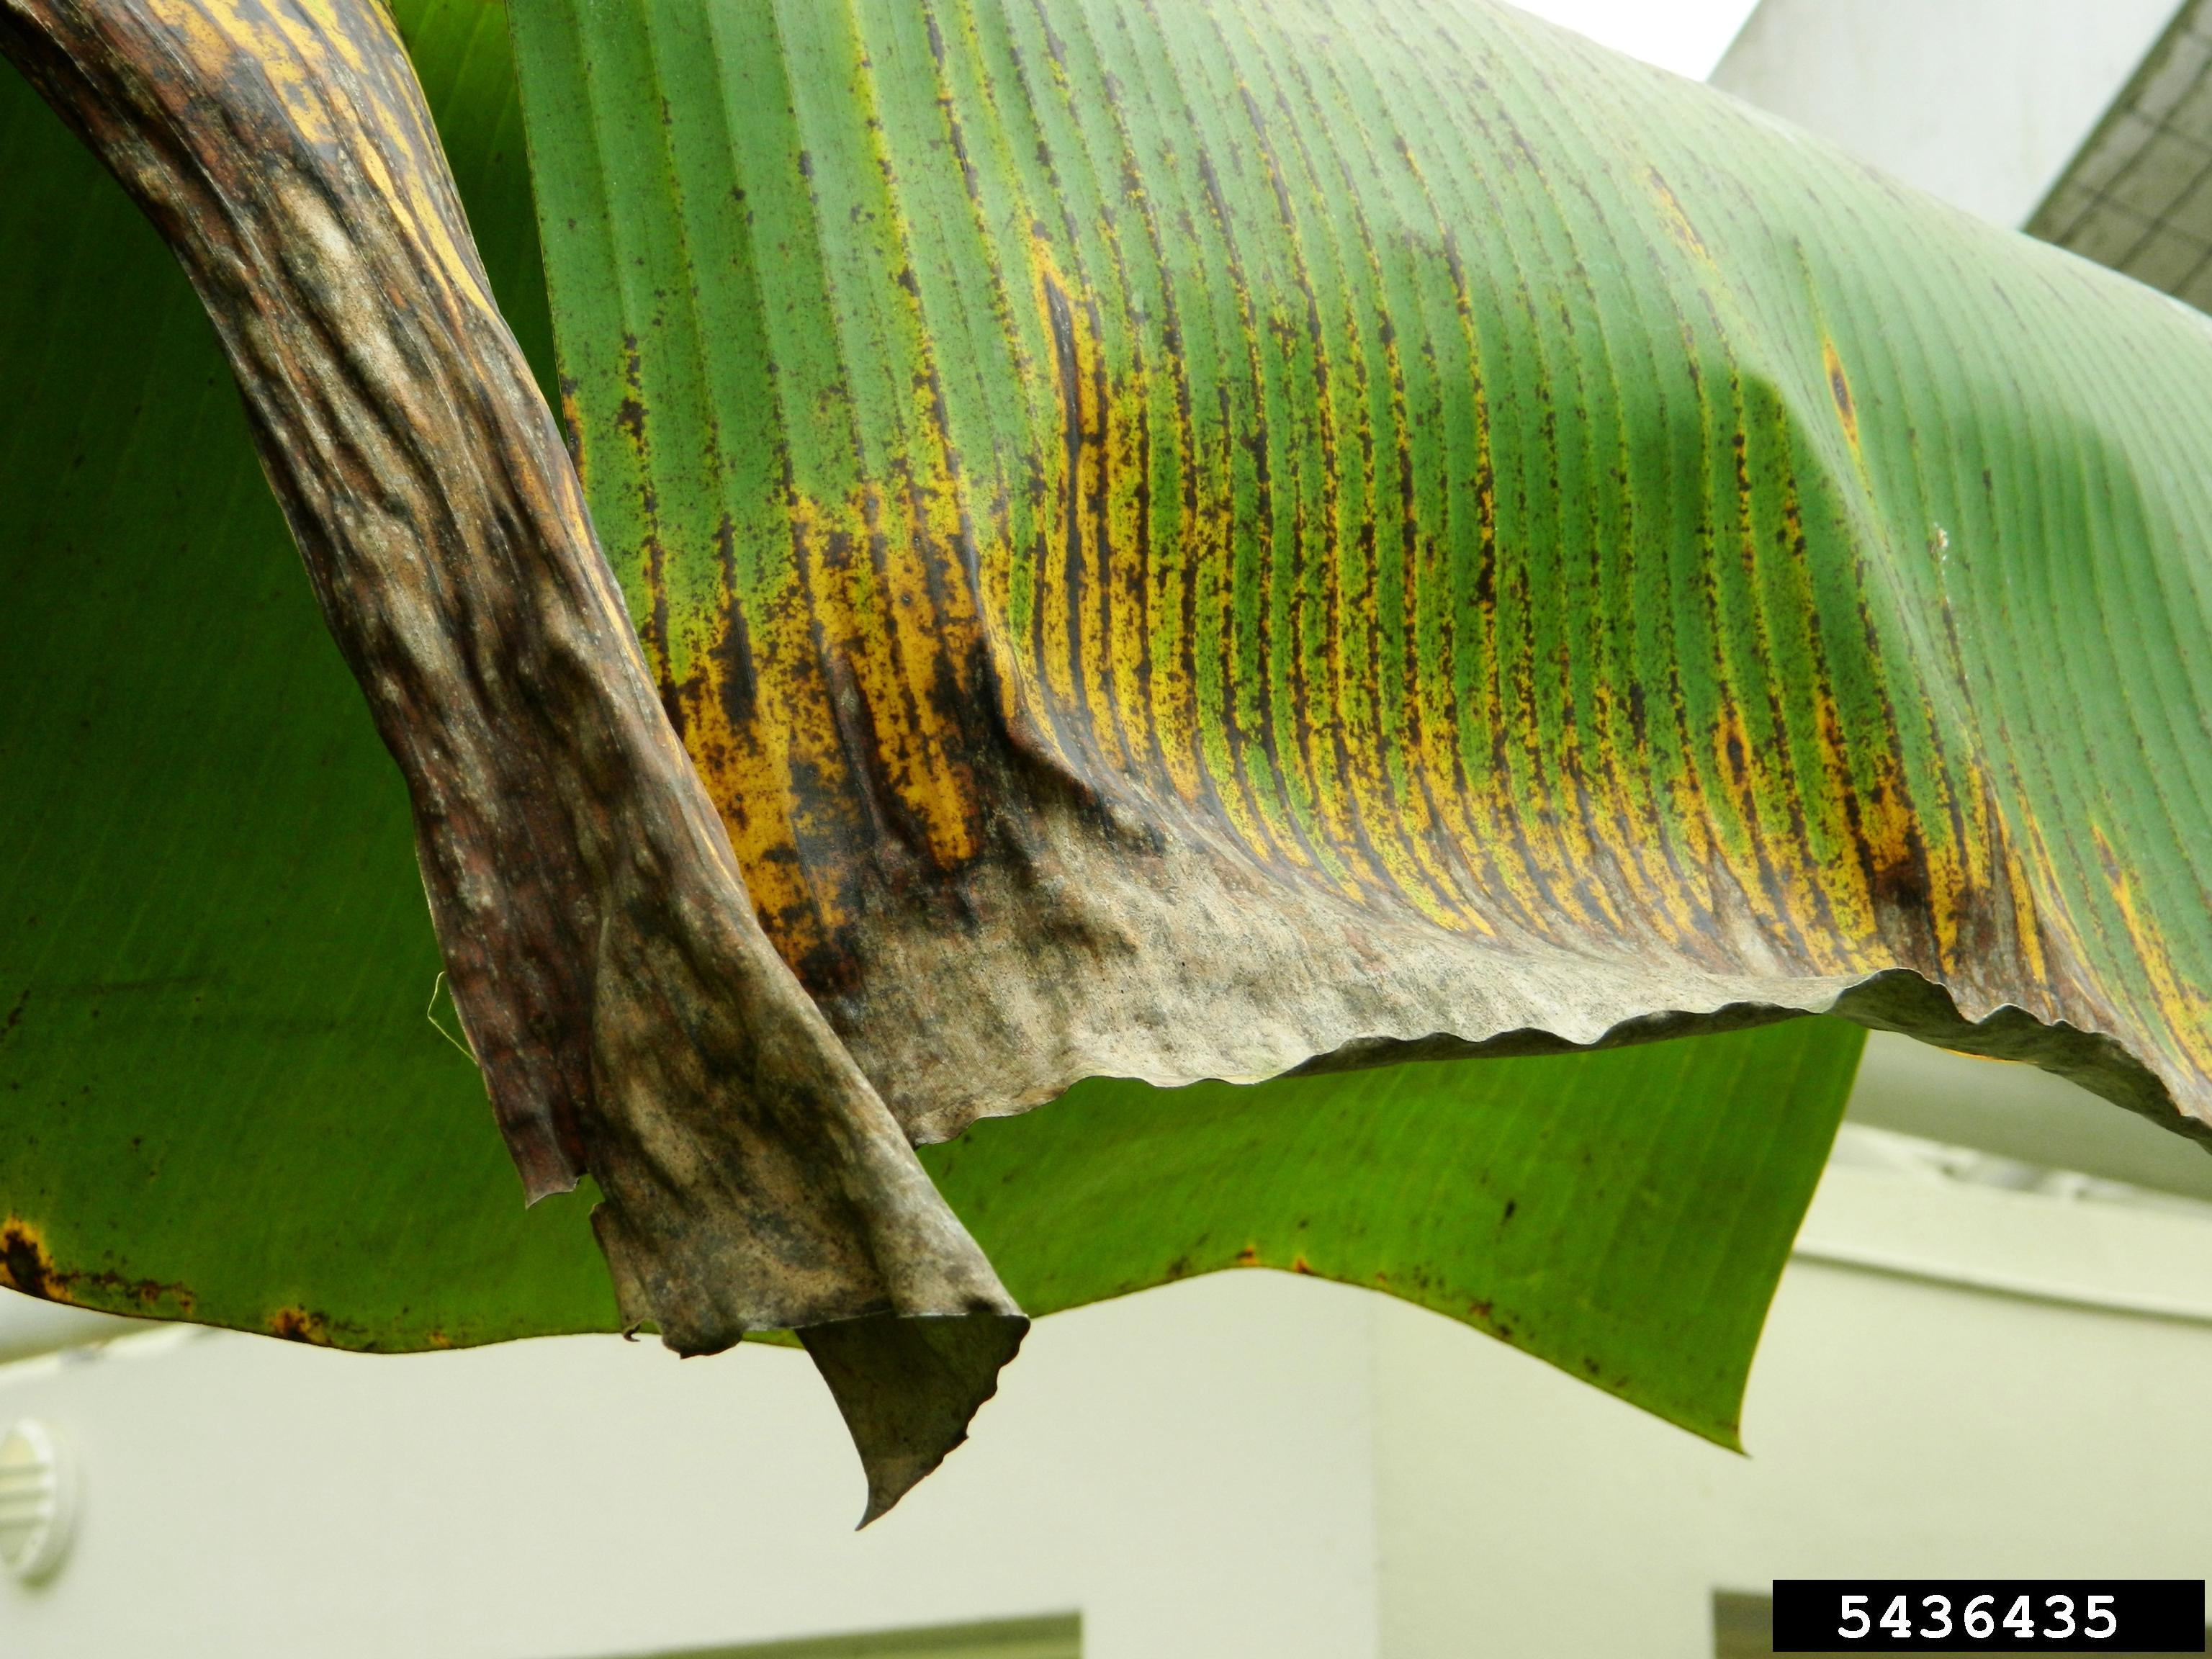 Banana leaf with black and yellow streaks along leaf veins progressing to a blackened area at the leaf margin